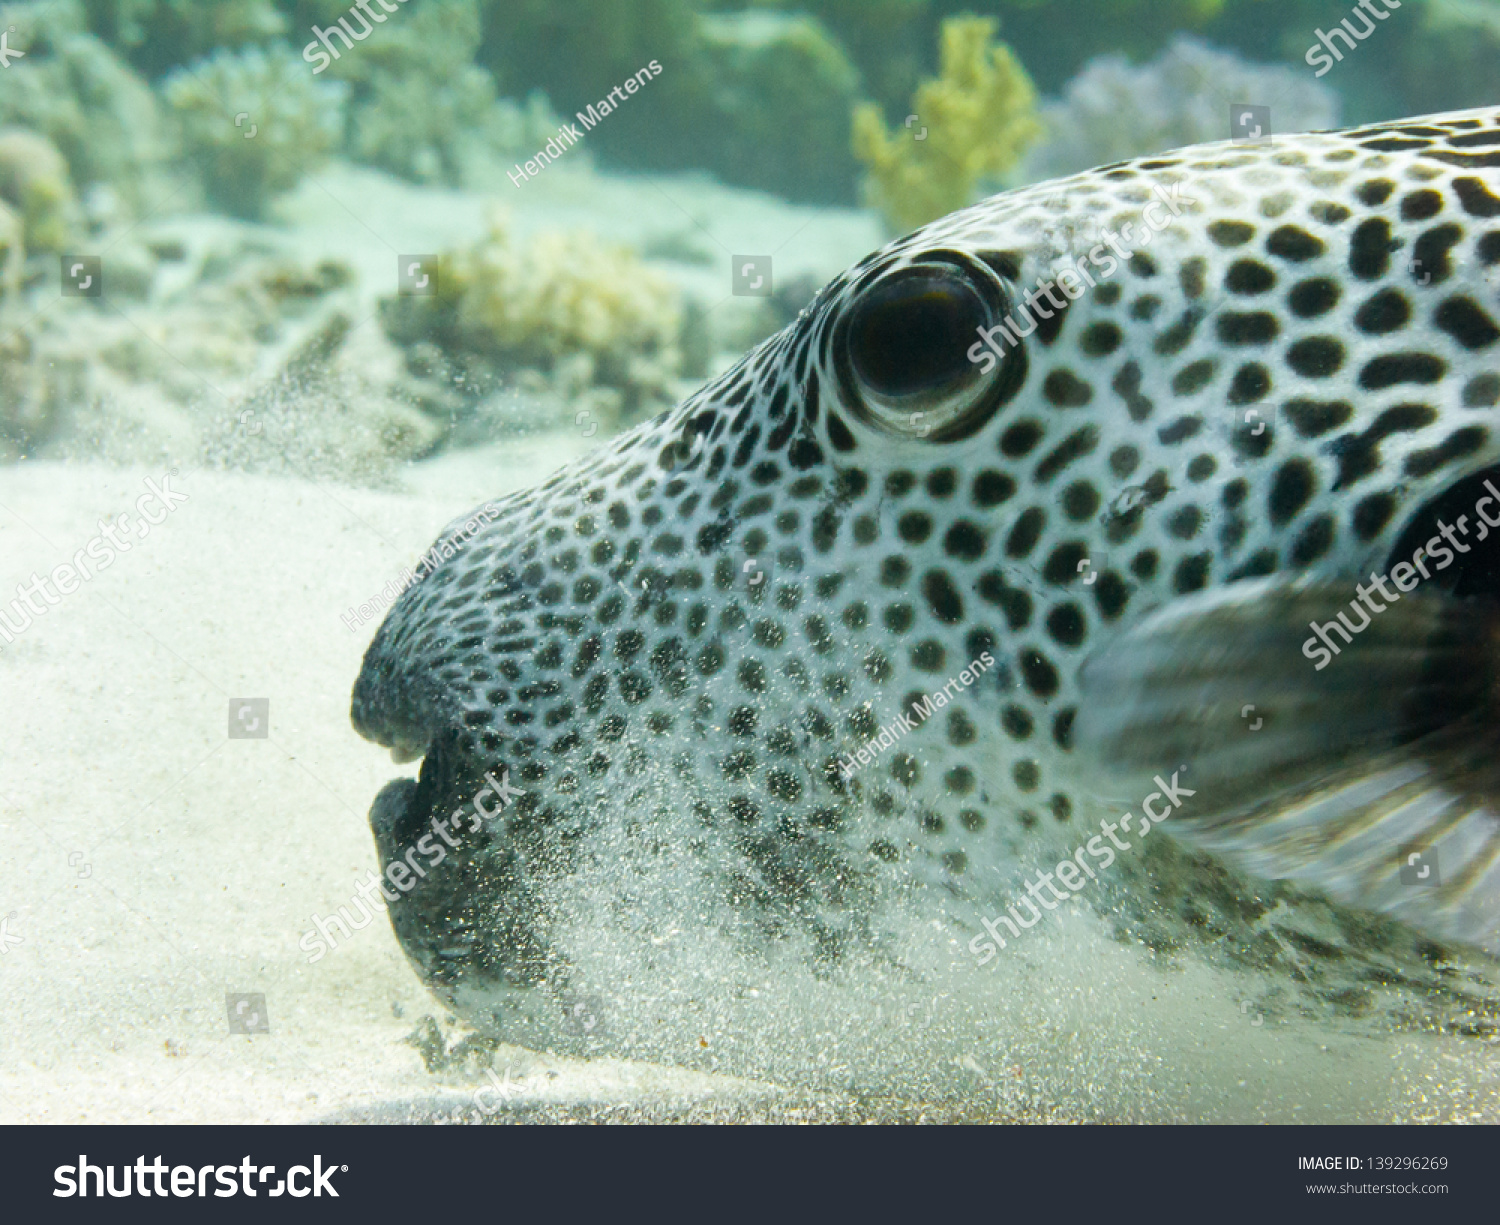 Giant puffer fish hovering over sandy stock photo for Giant puffer fish